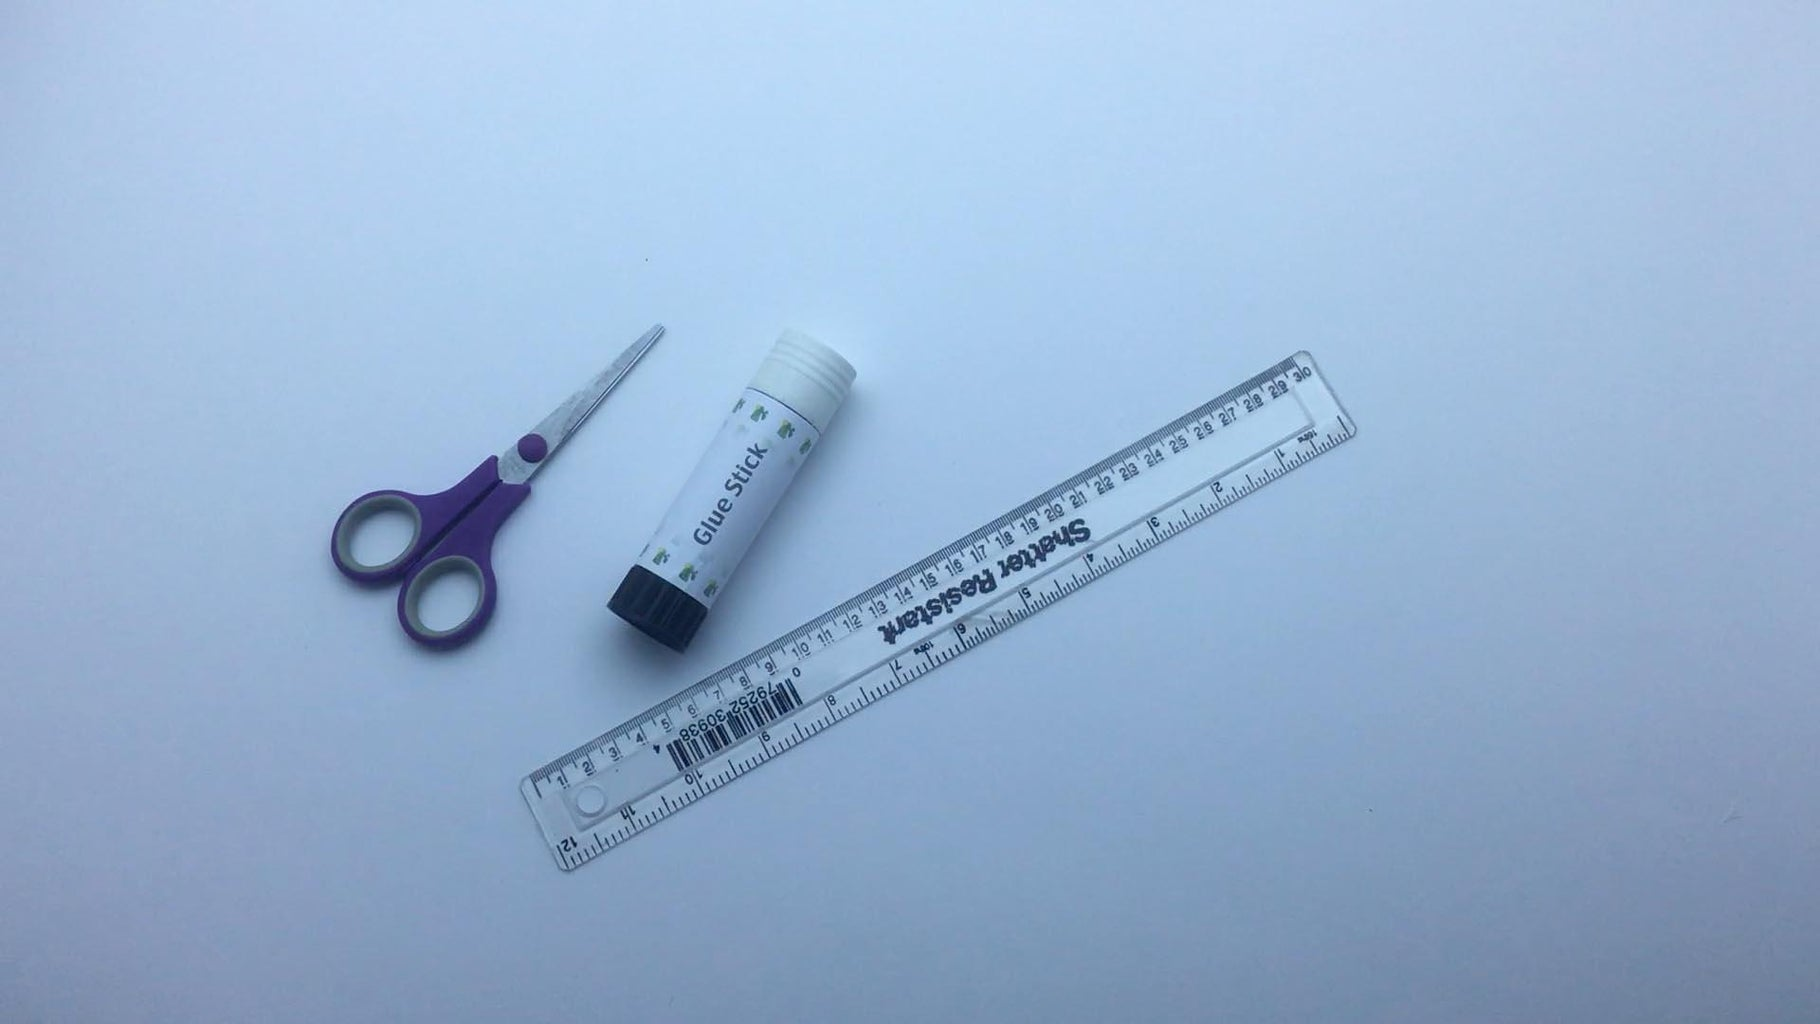 Tools Needed for the Next Parts - Cut, Fold and Paste